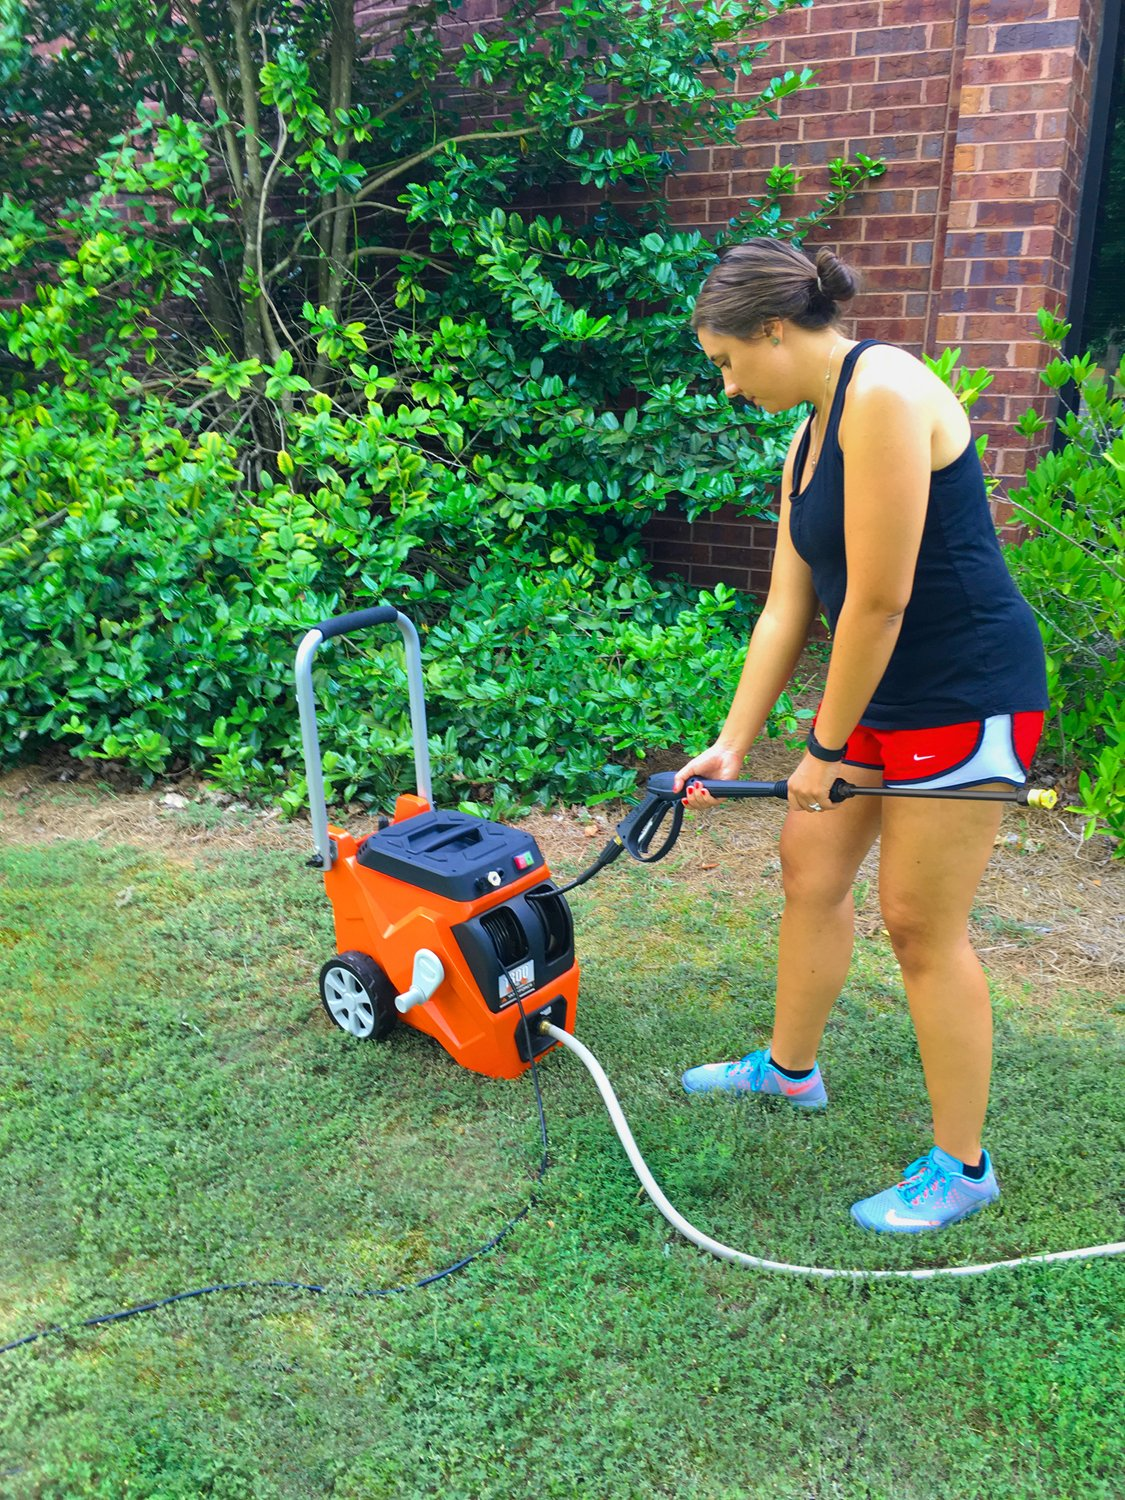 The Force 1800 Pressure Washer